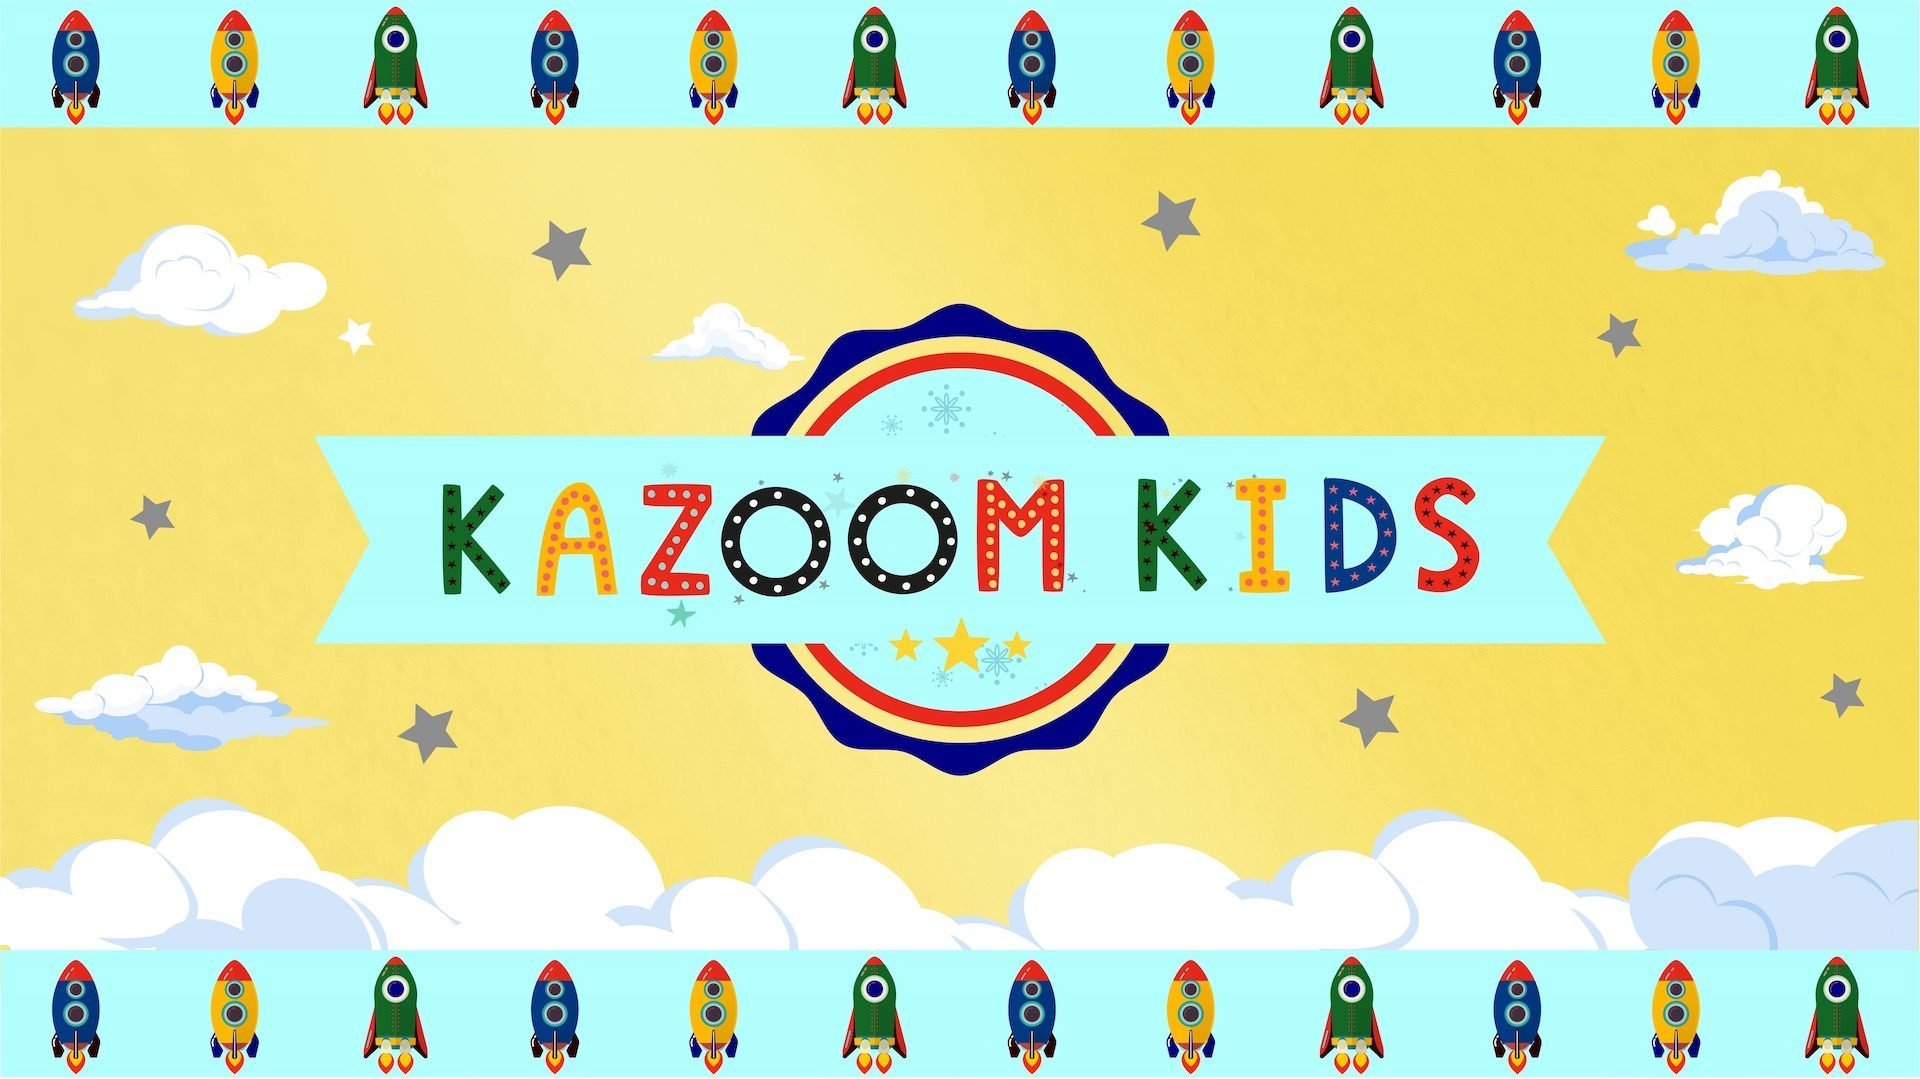 Kazoom Kids Hero Image